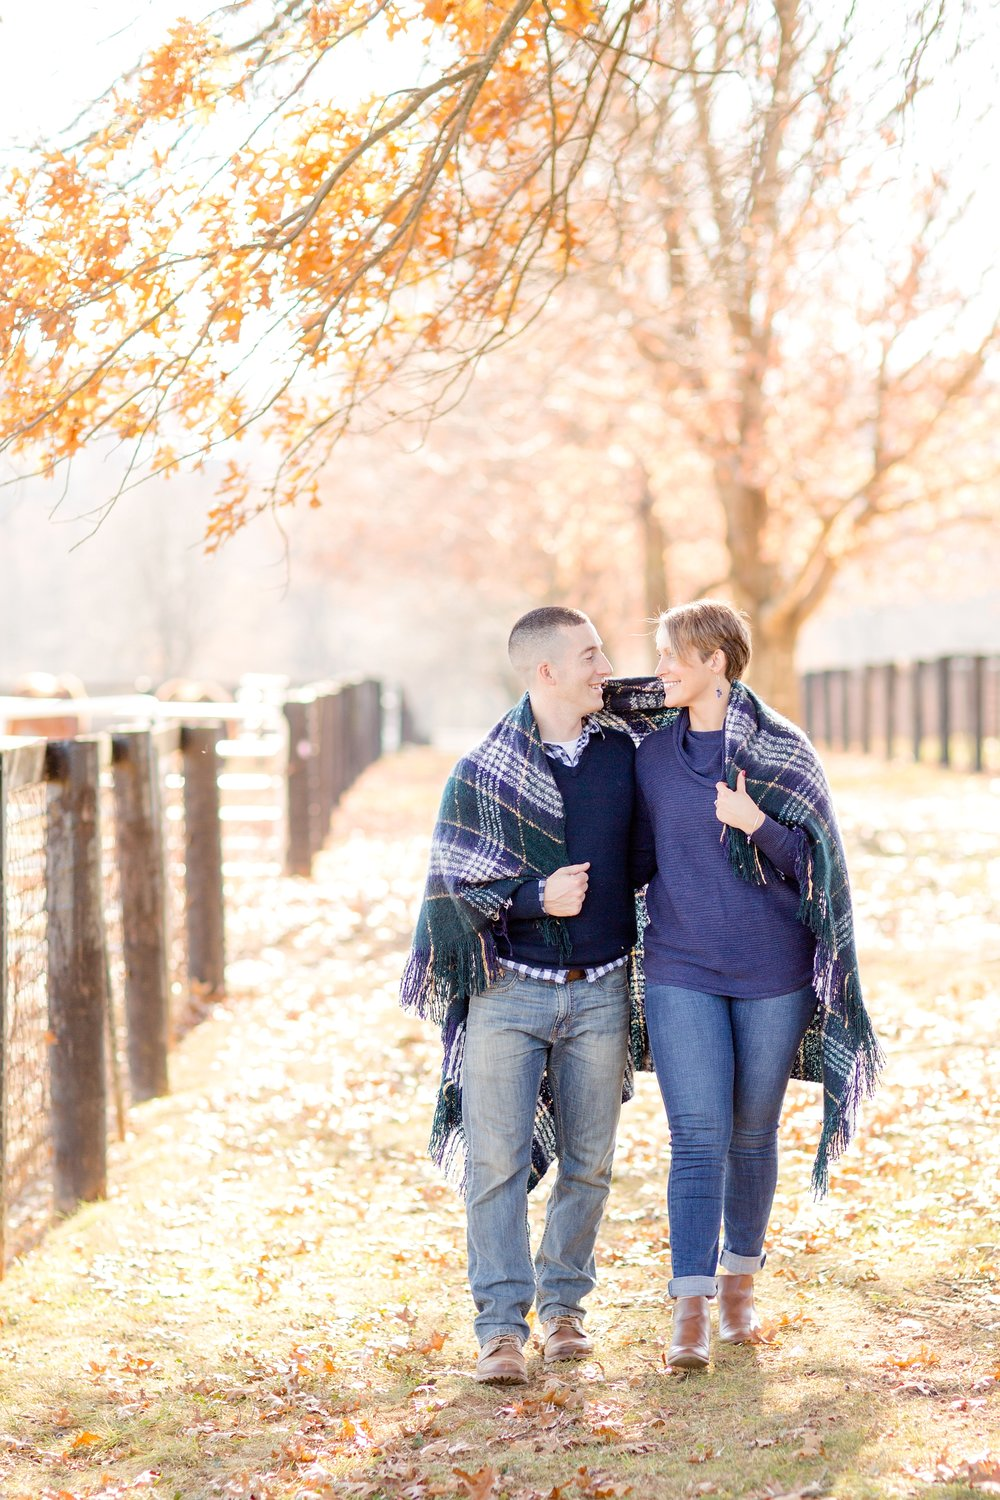 Emily & Joe Engaged-247_anna grace photography baltimore maryland wedding and engagement photographer helmore farm photo.jpg